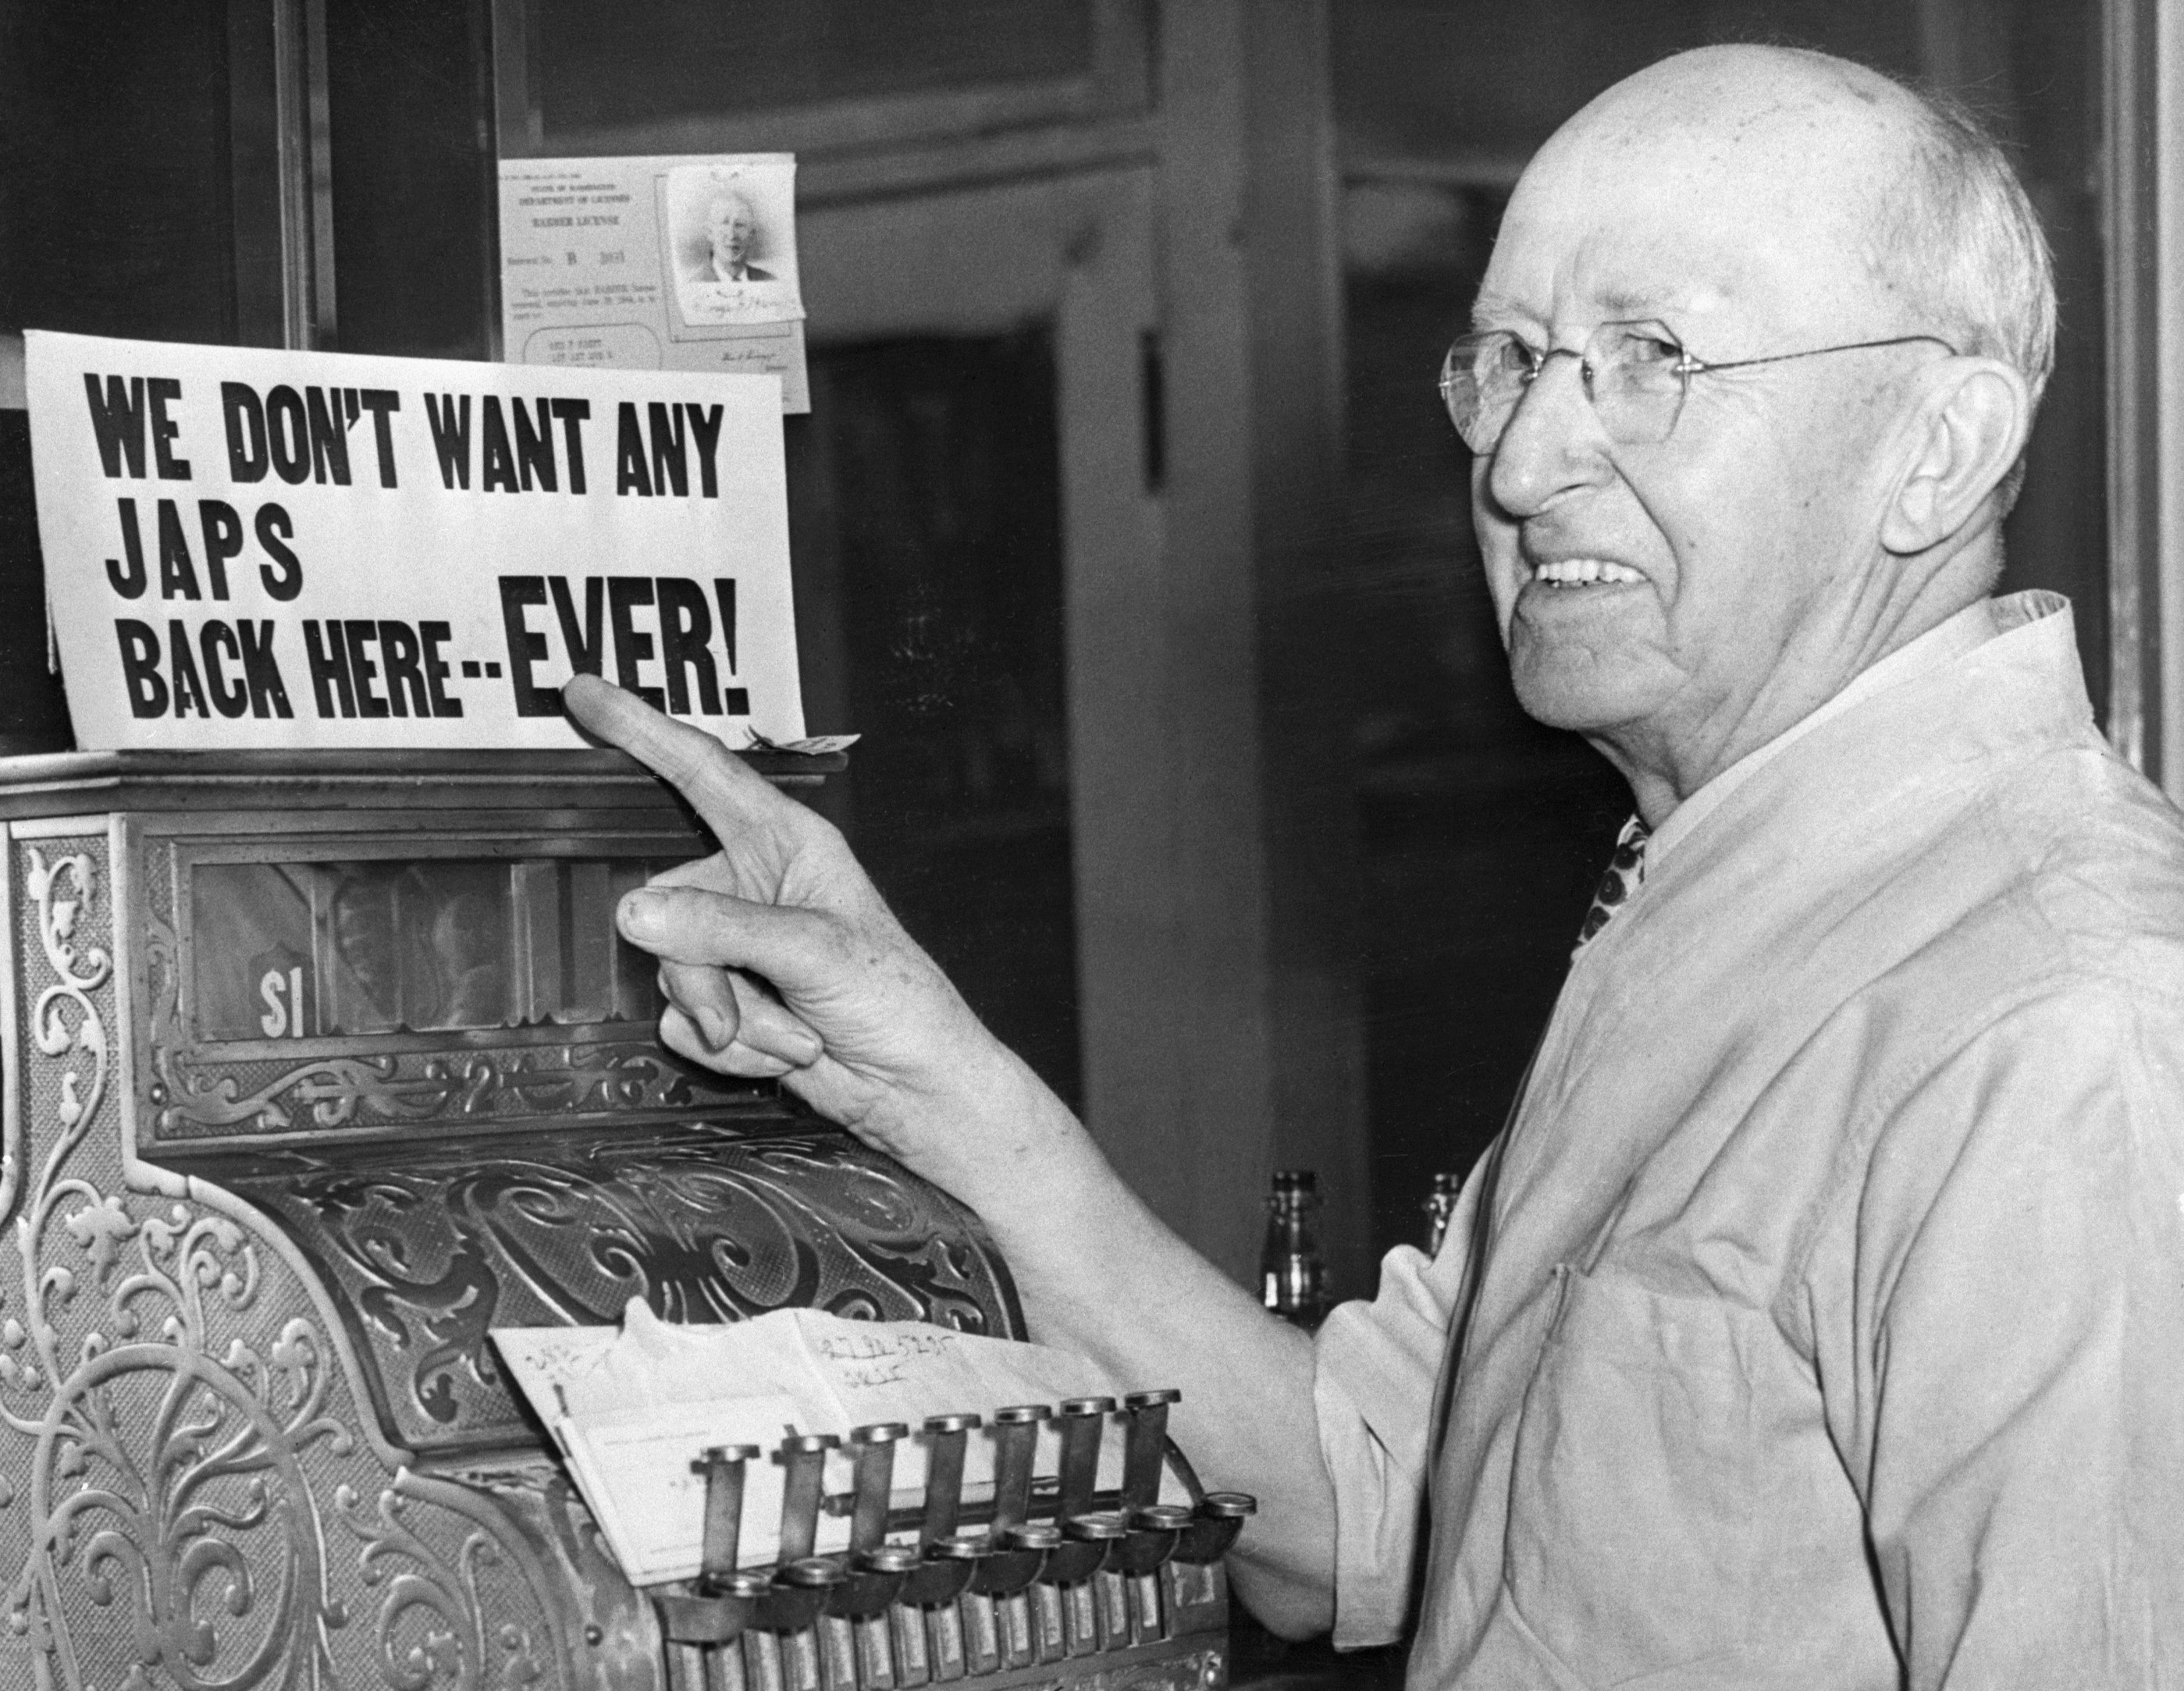 """The sign rests above the cash register and reads, """"We Don't Want Any Japs Back Here ... EVER!"""""""